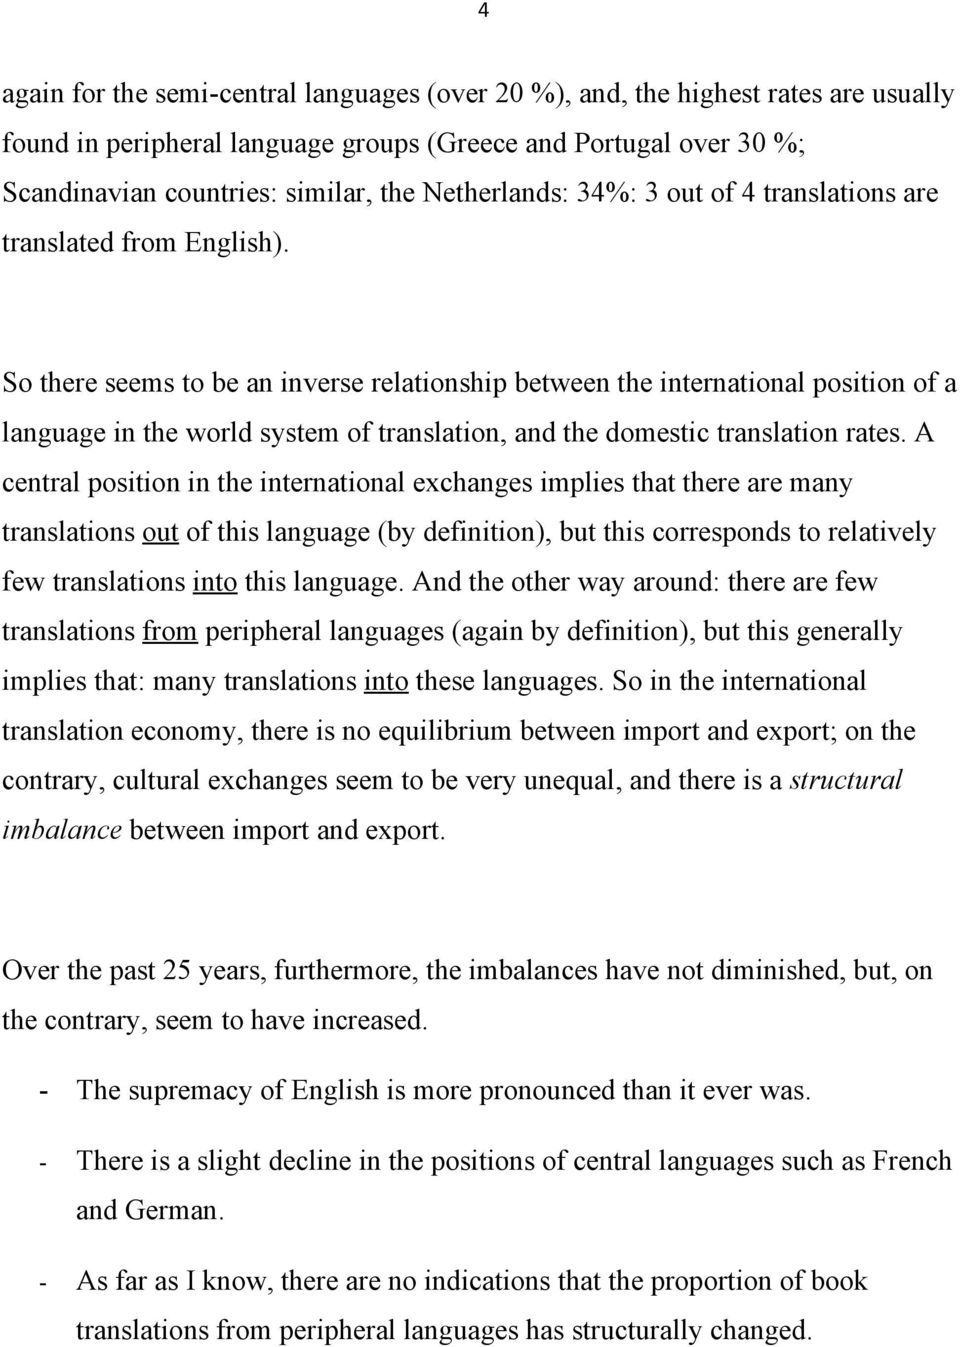 So there seems to be an inverse relationship between the international position of a language in the world system of translation, and the domestic translation rates.